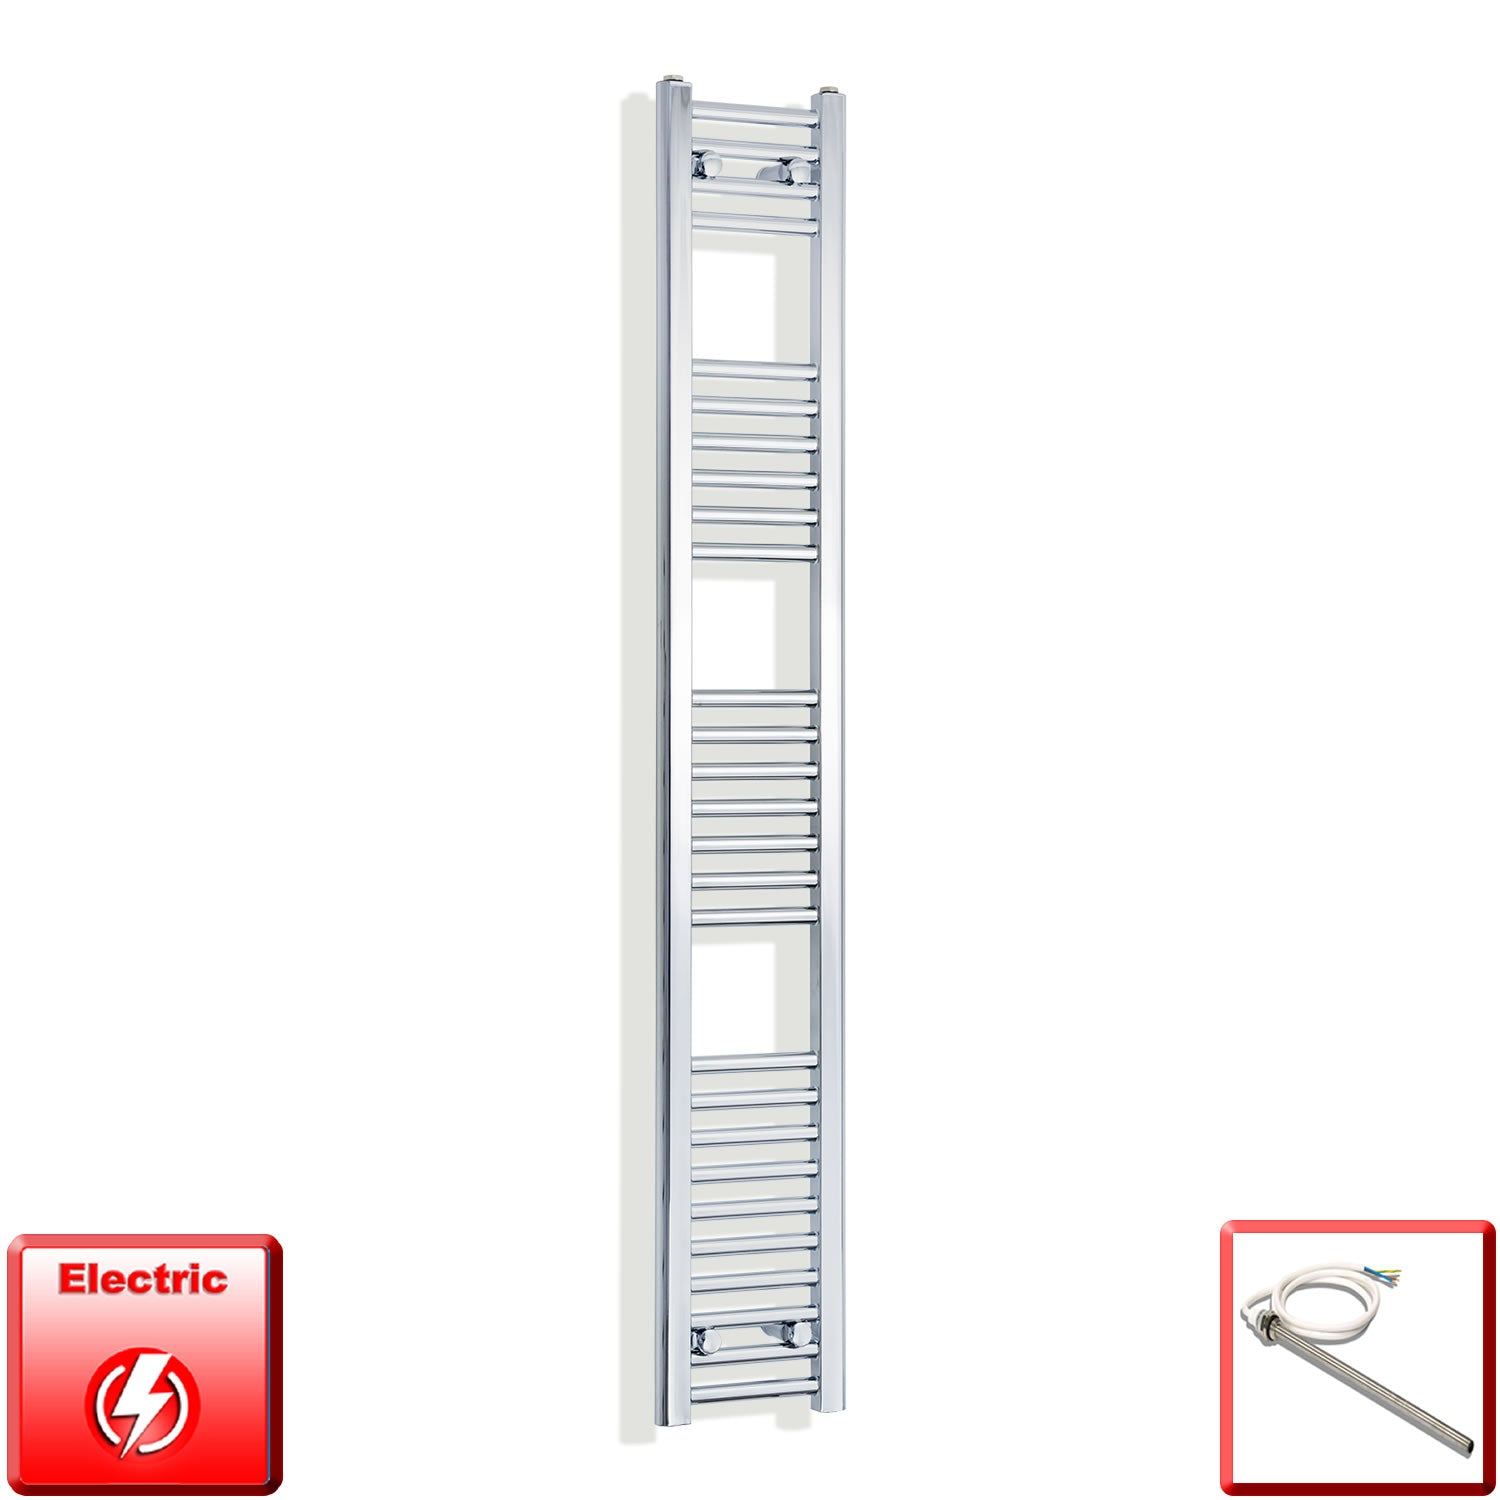 200mm Wide 1600mm High Pre-Filled Chrome Electric Towel Rail Radiator With Single Heat Element